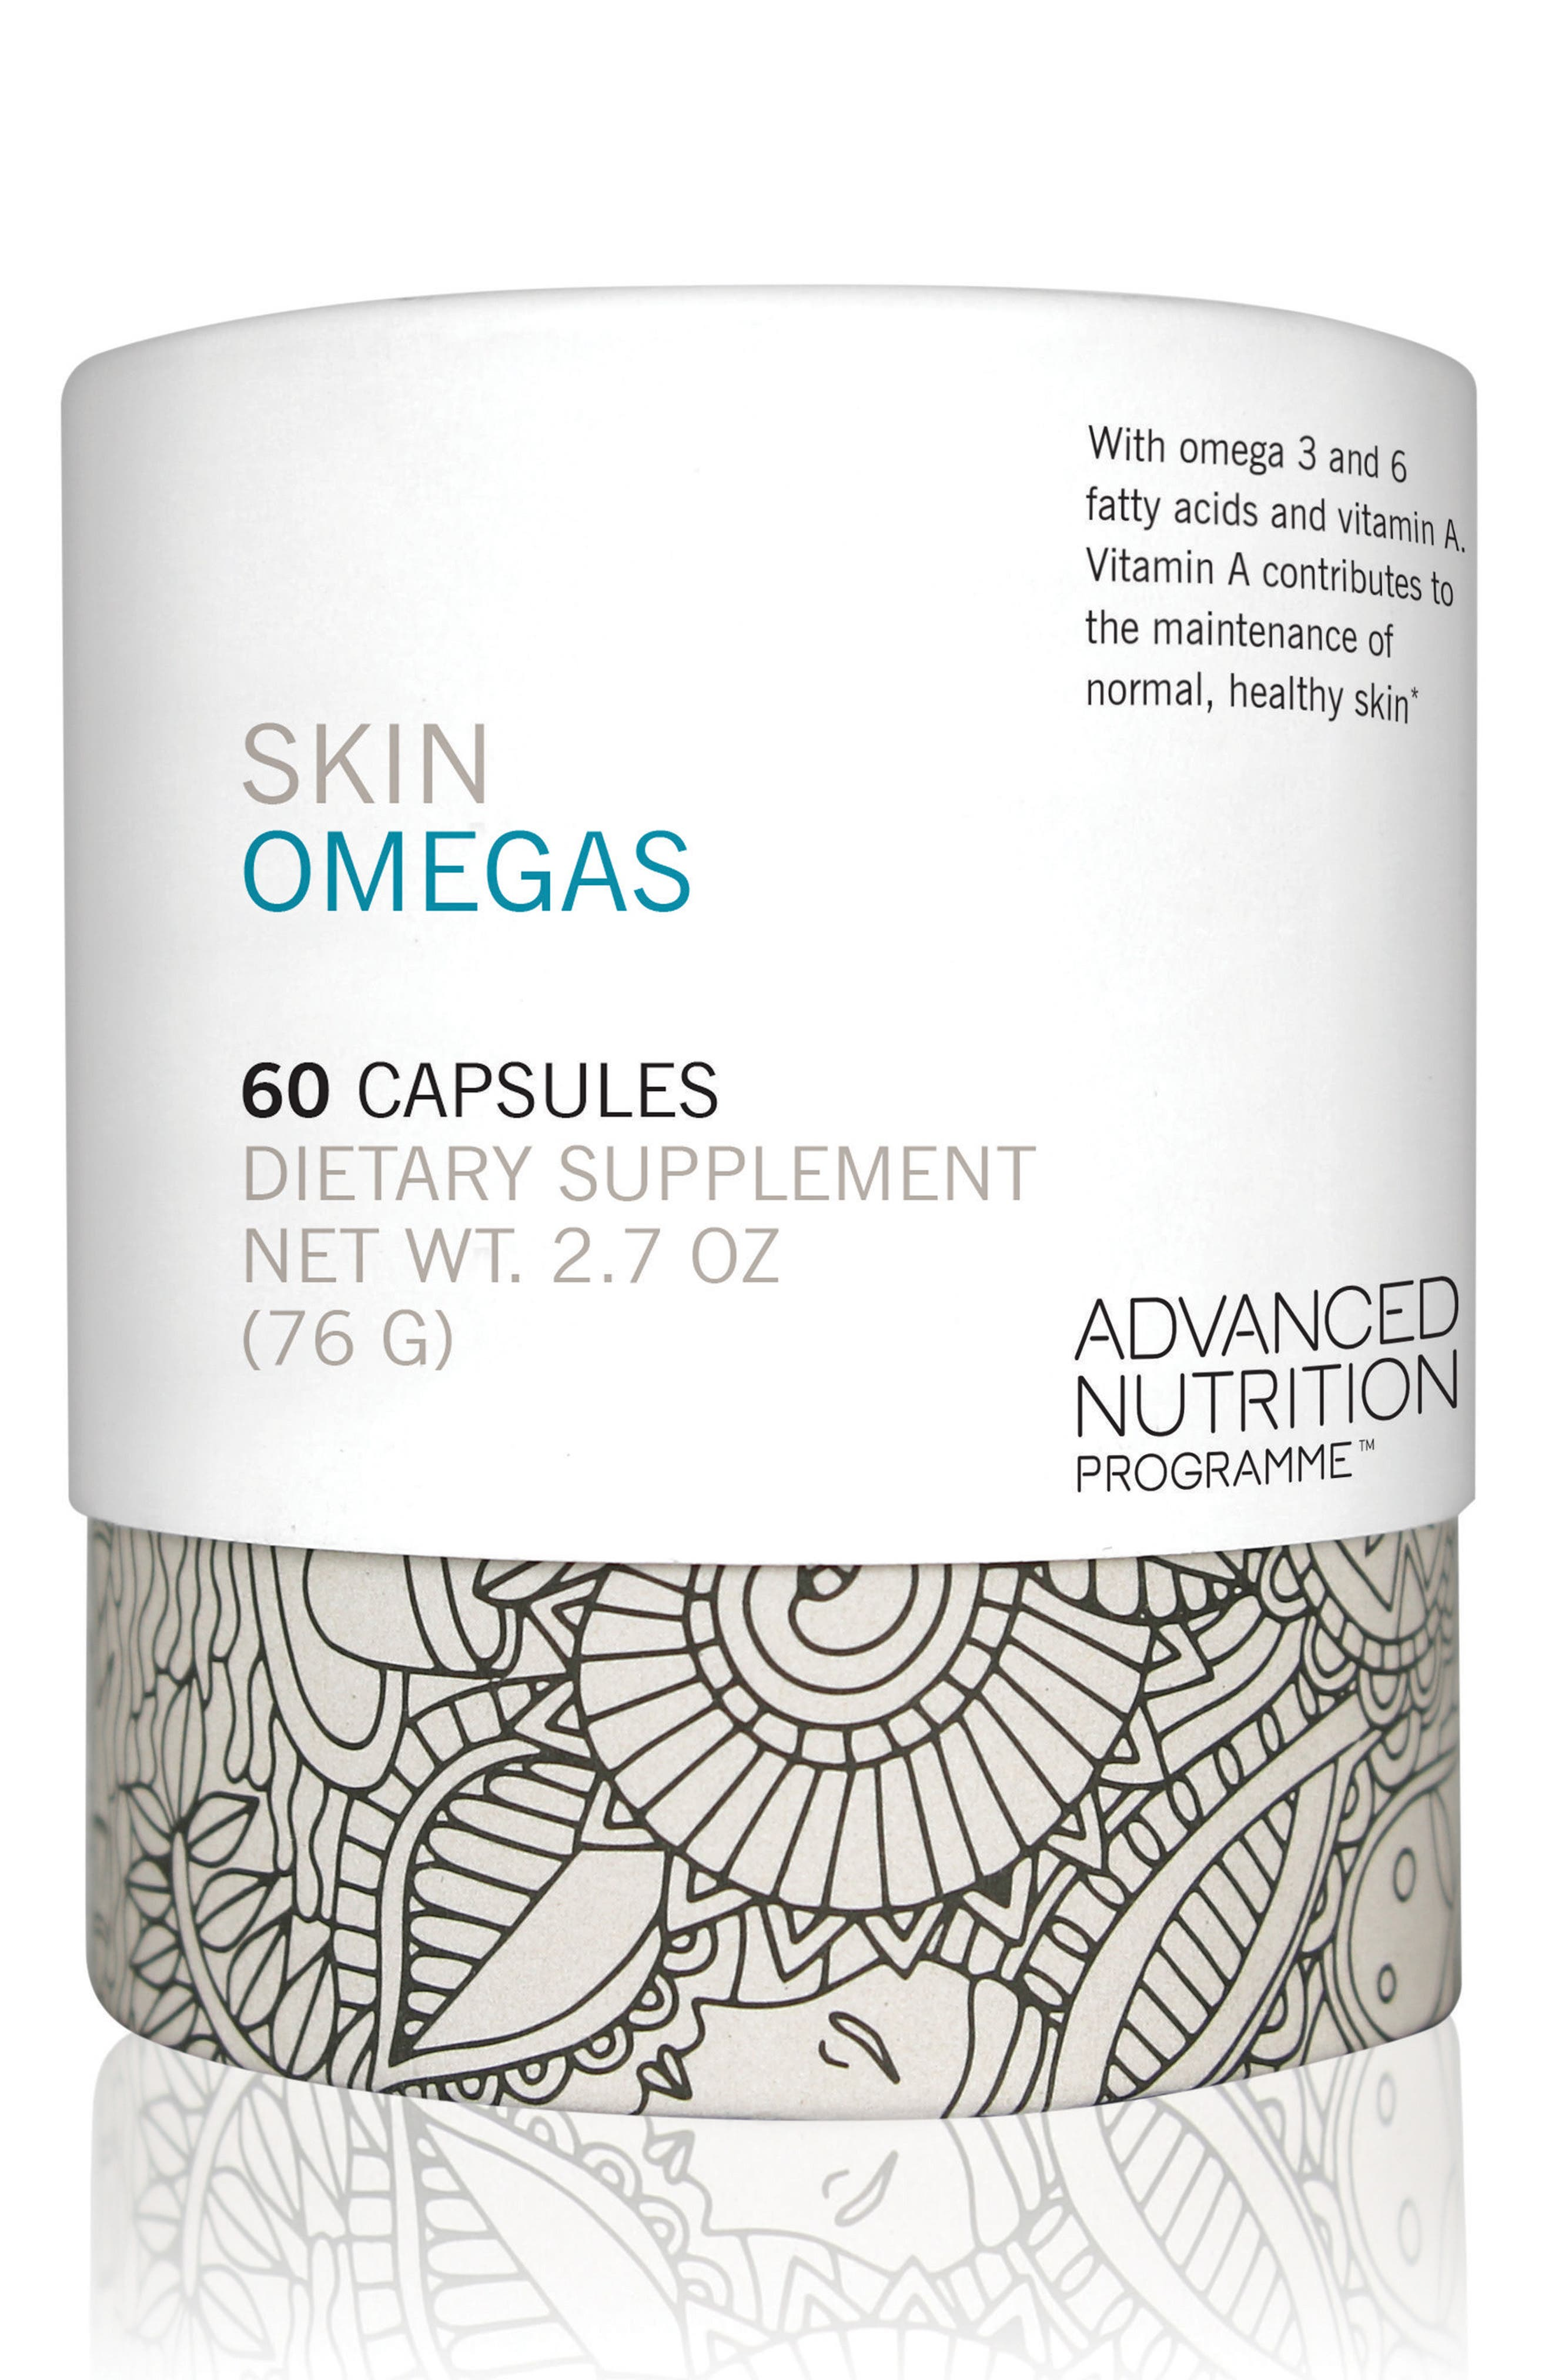 jane iredale Skin Omegas Dietary Supplement